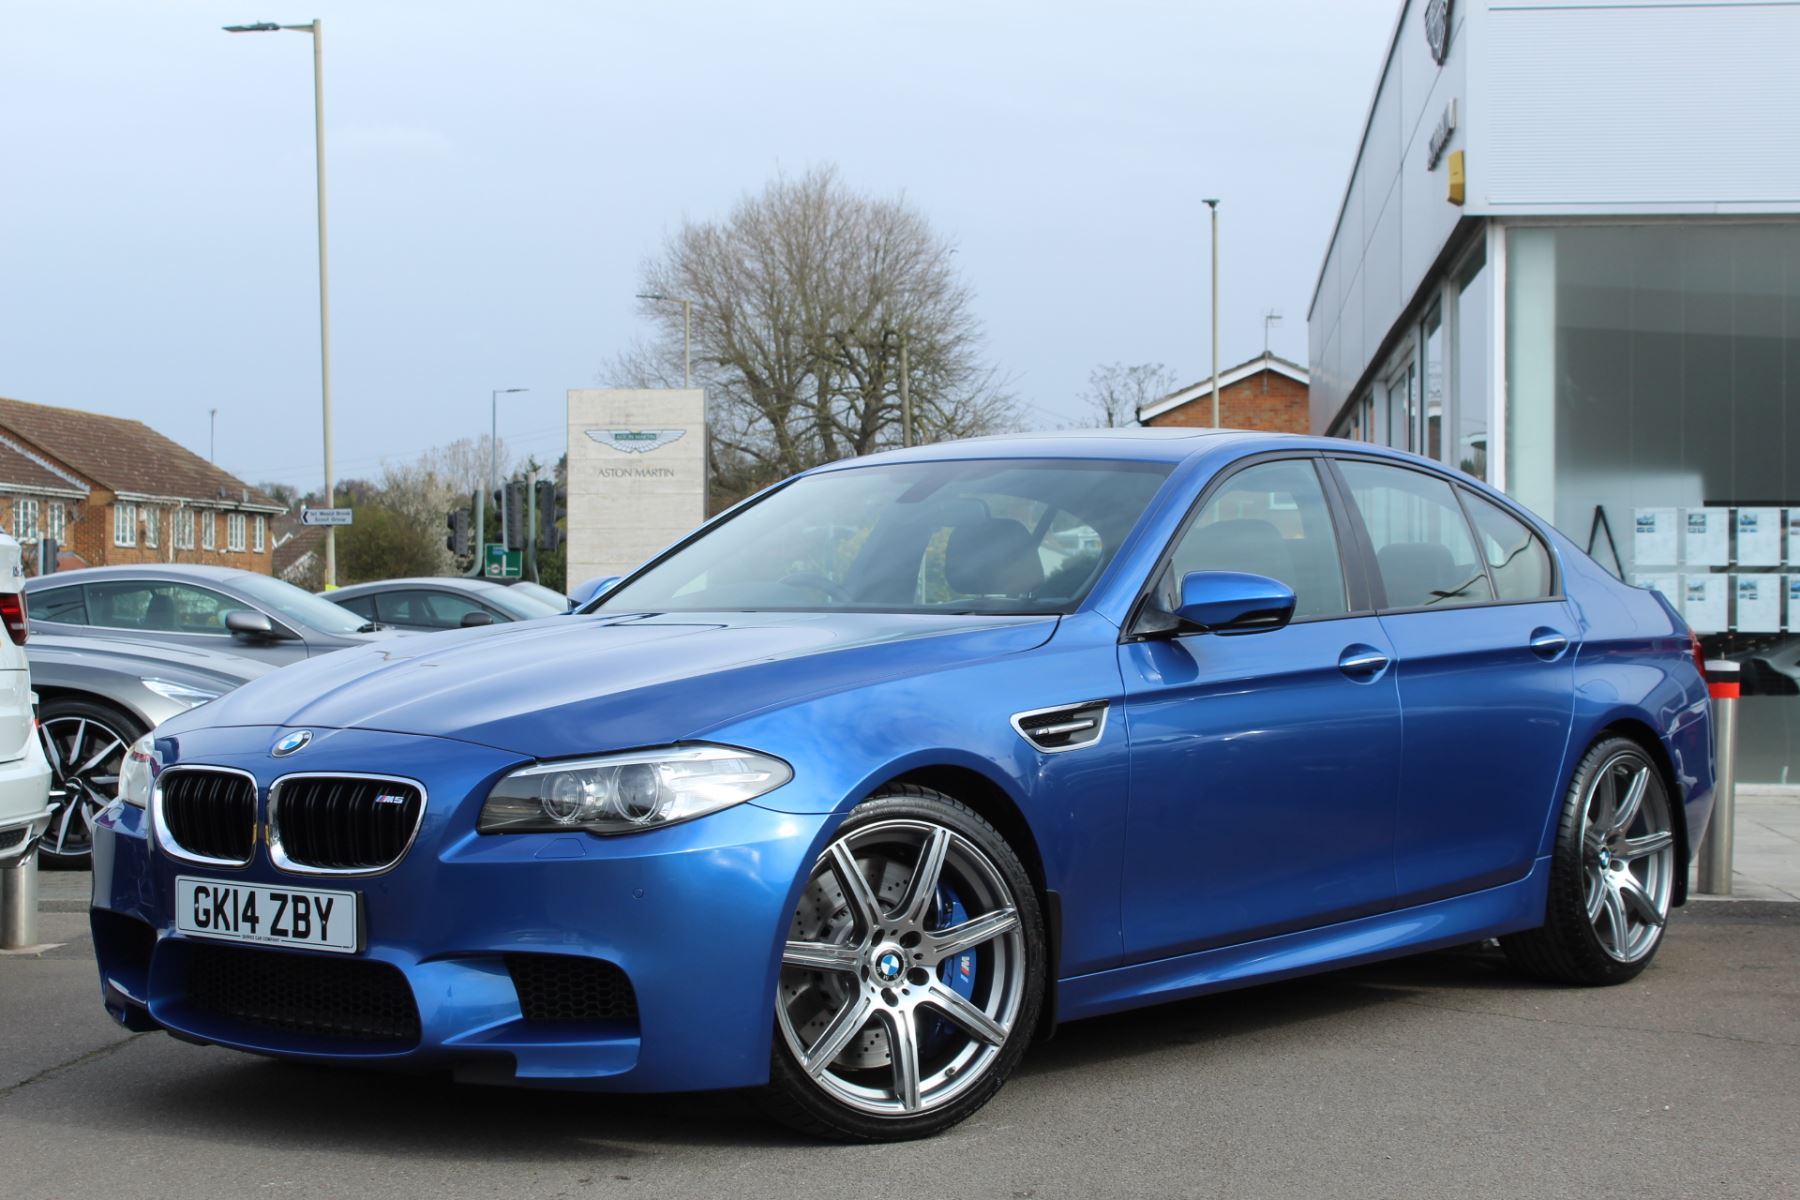 BMW M5 Saloon M5 DCT 4.4 Automatic 4 door Saloon (2014)